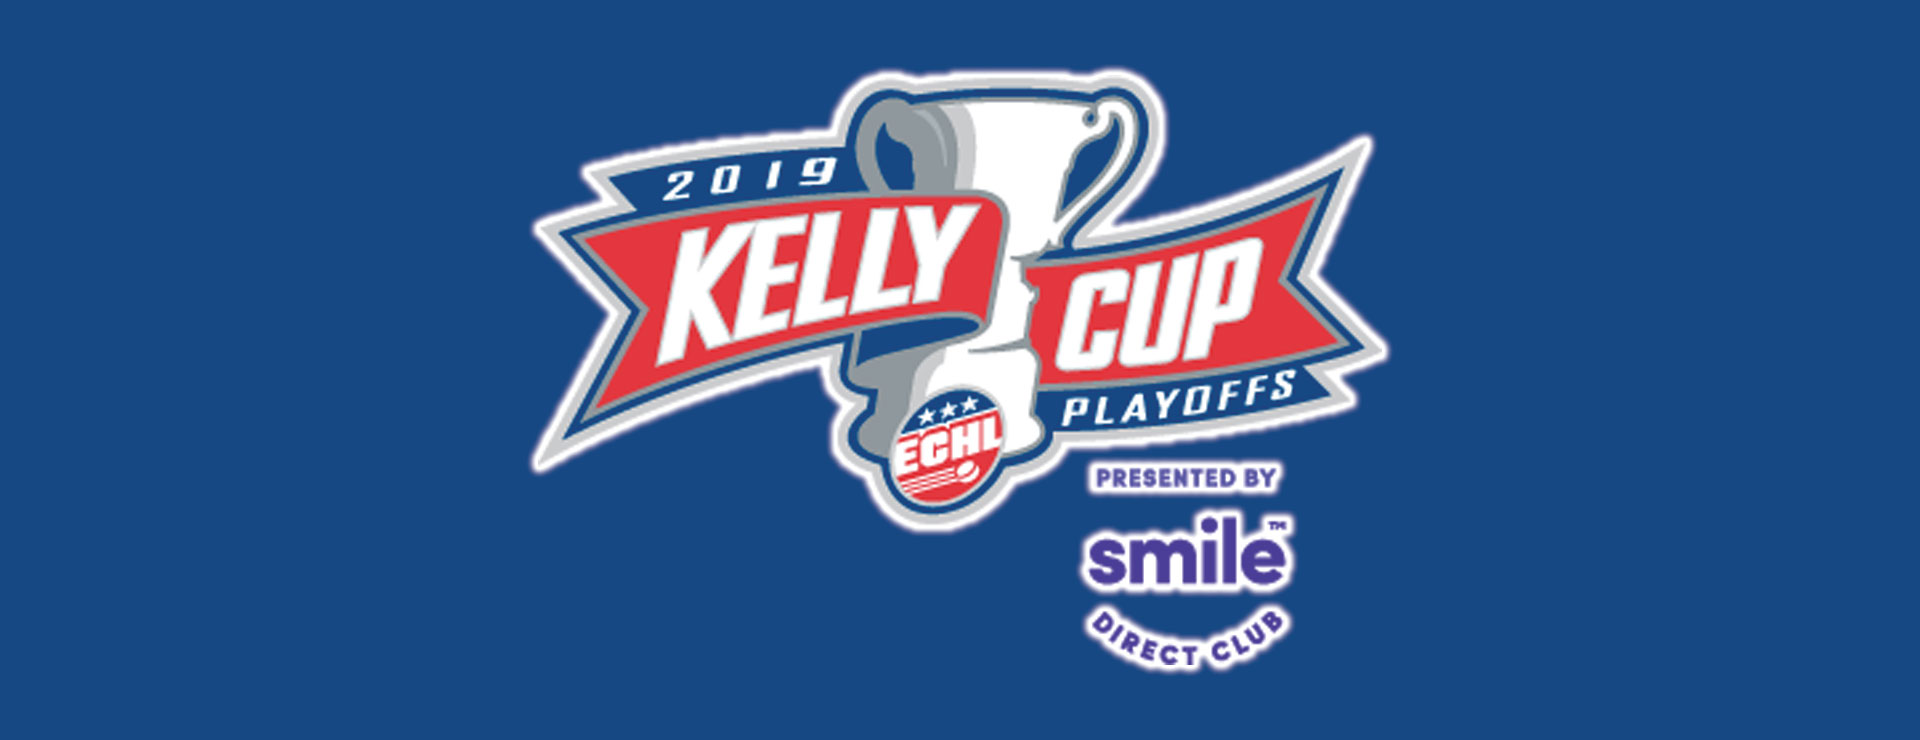 Growlers and Walleye set for Kelly Cup Finals | Pro Hockey News